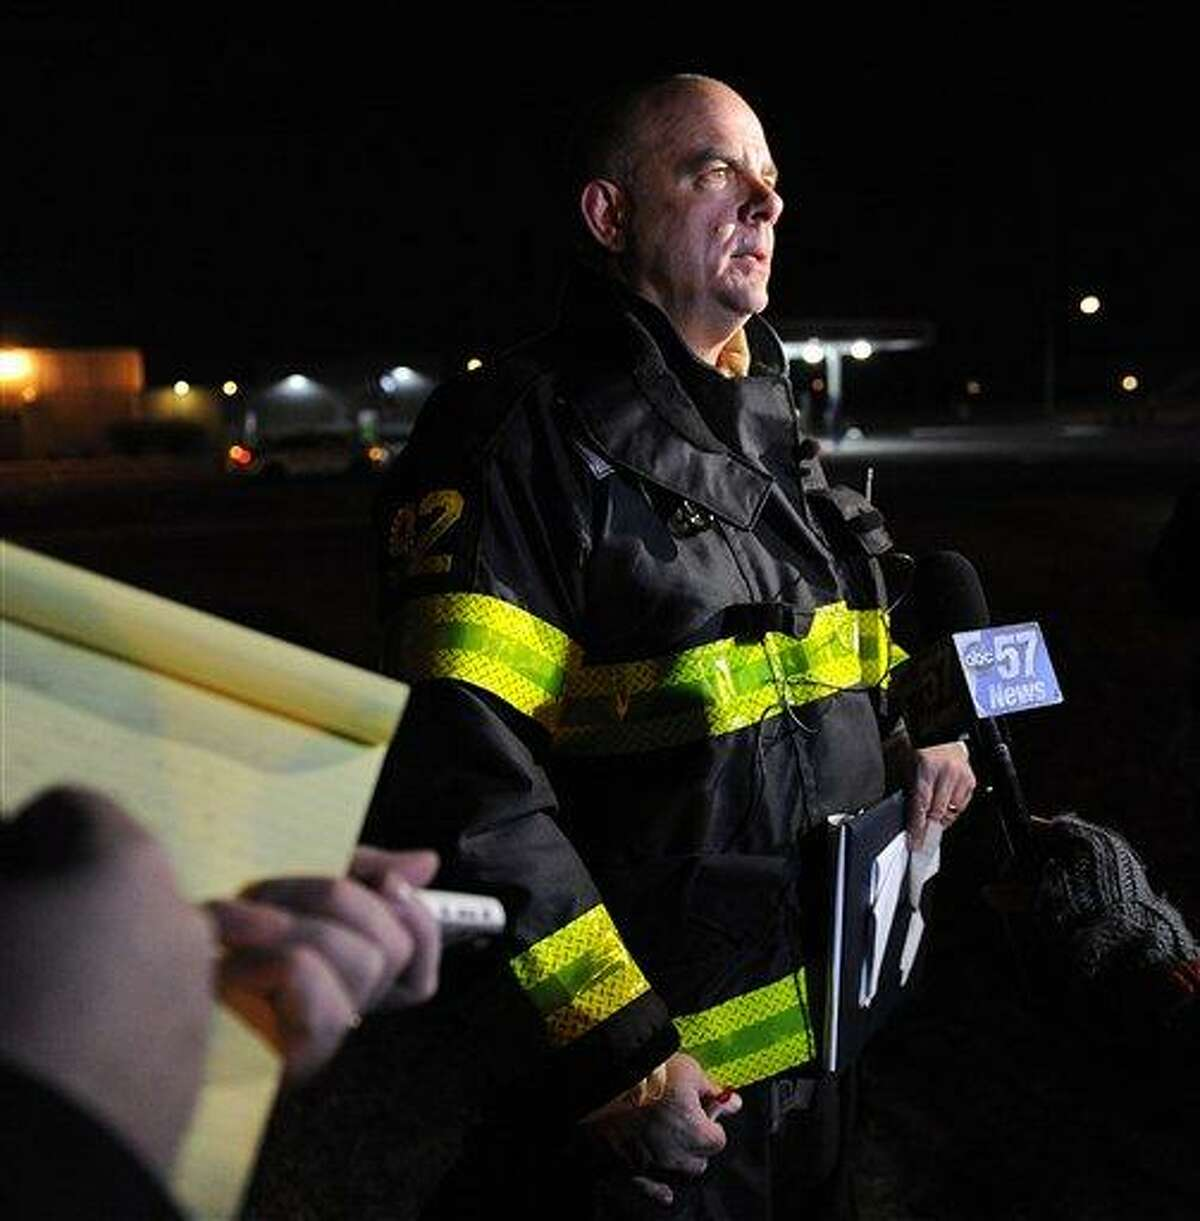 South Bend Fire Department Assistant Chief John Corthier answers questions about a plane crash that occurred near the South Bend Regional Airport Sunday March 17, 2013 in South Bend, Ind. The private jet apparently experiencing mechanical trouble crashed in a northern Indiana neighborhood, resulting in injuries and striking three homes, authorities and witnesses said. (AP Photo/Joe Raymond)